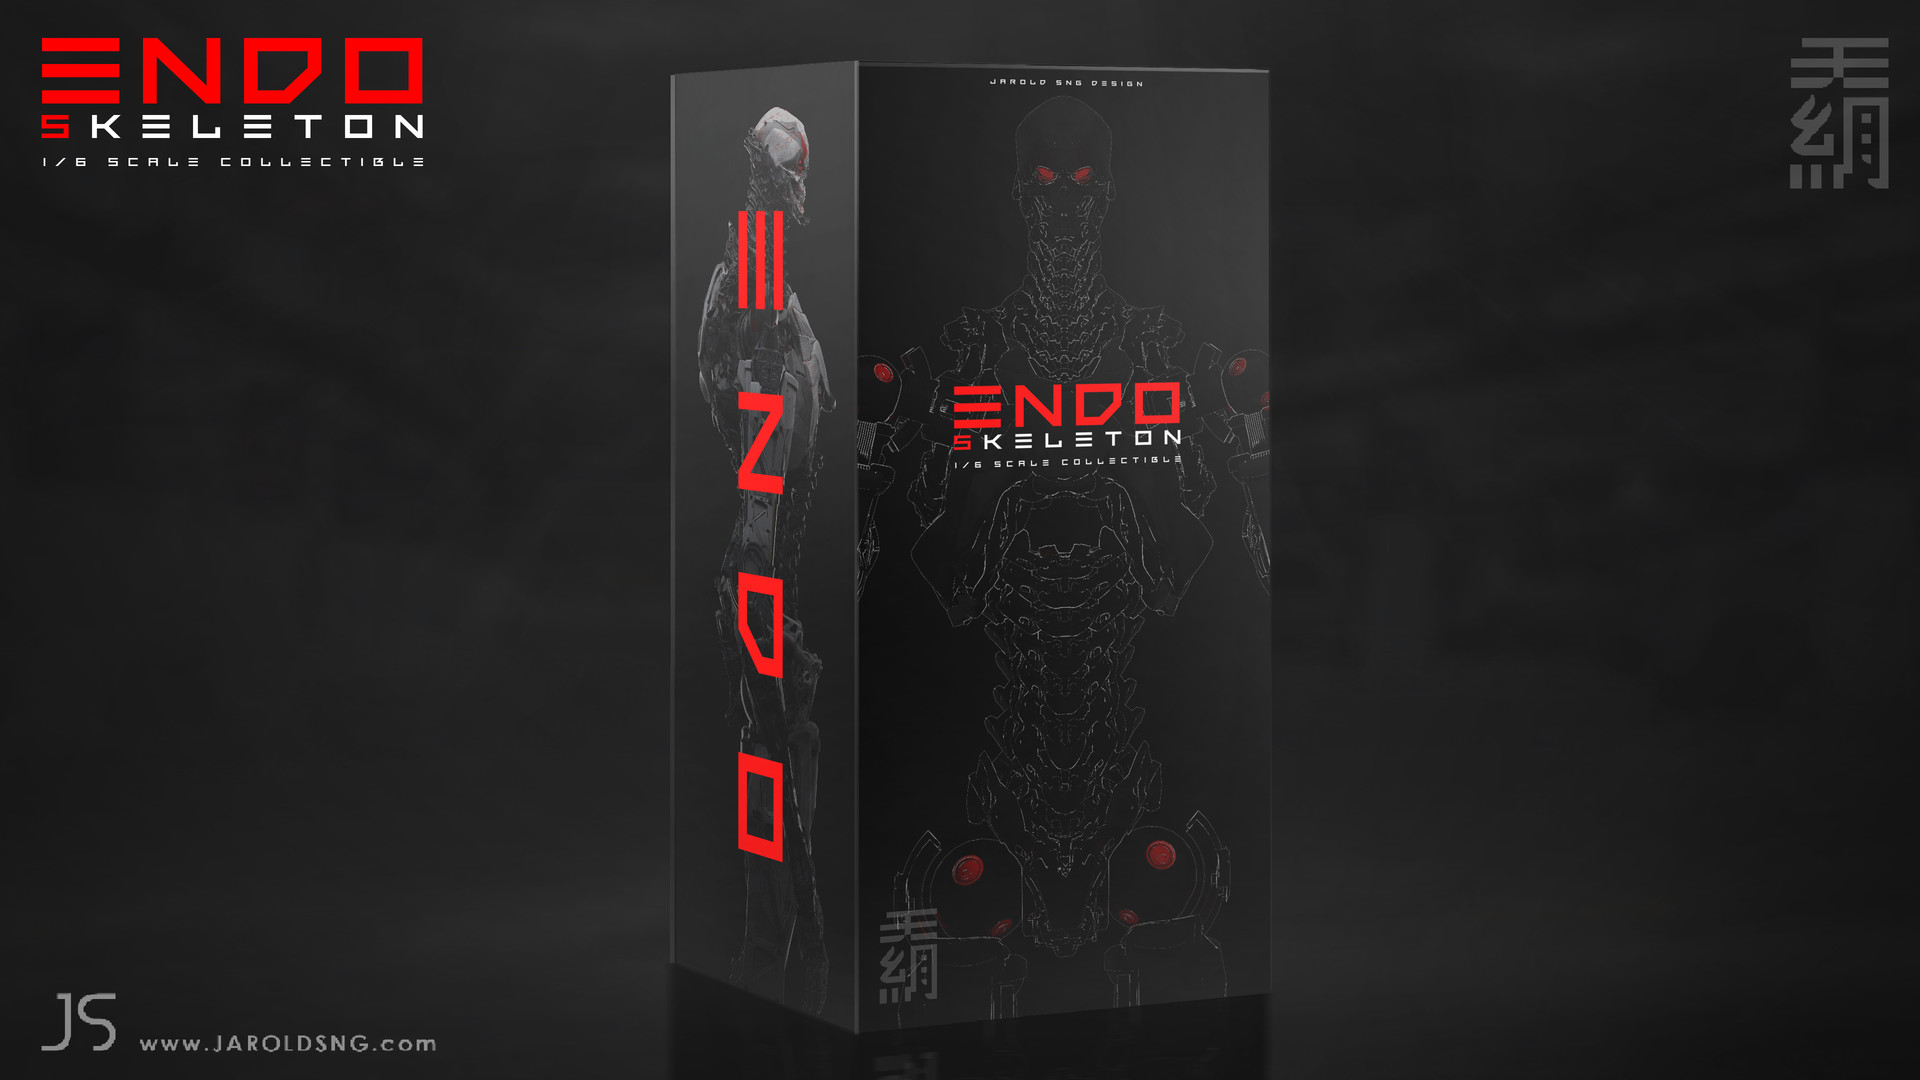 Jarold sng endos packaging design